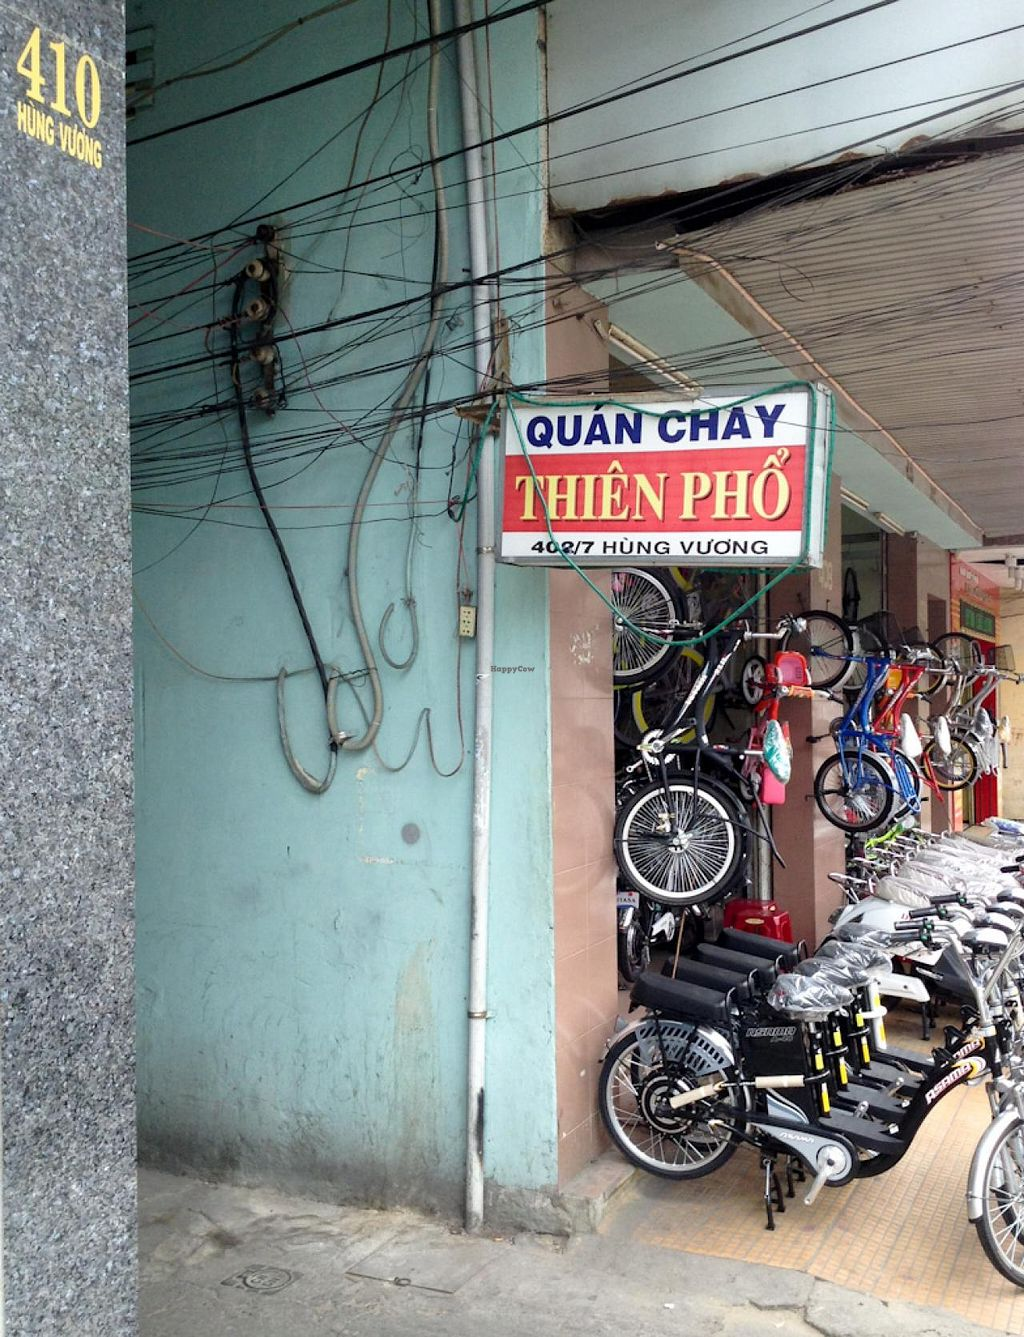 """Photo of Thien Pho  by <a href=""""/members/profile/Ranks42"""">Ranks42</a> <br/>Street Entrance to Restaurant's Alley <br/> July 6, 2014  - <a href='/contact/abuse/image/26192/73335'>Report</a>"""